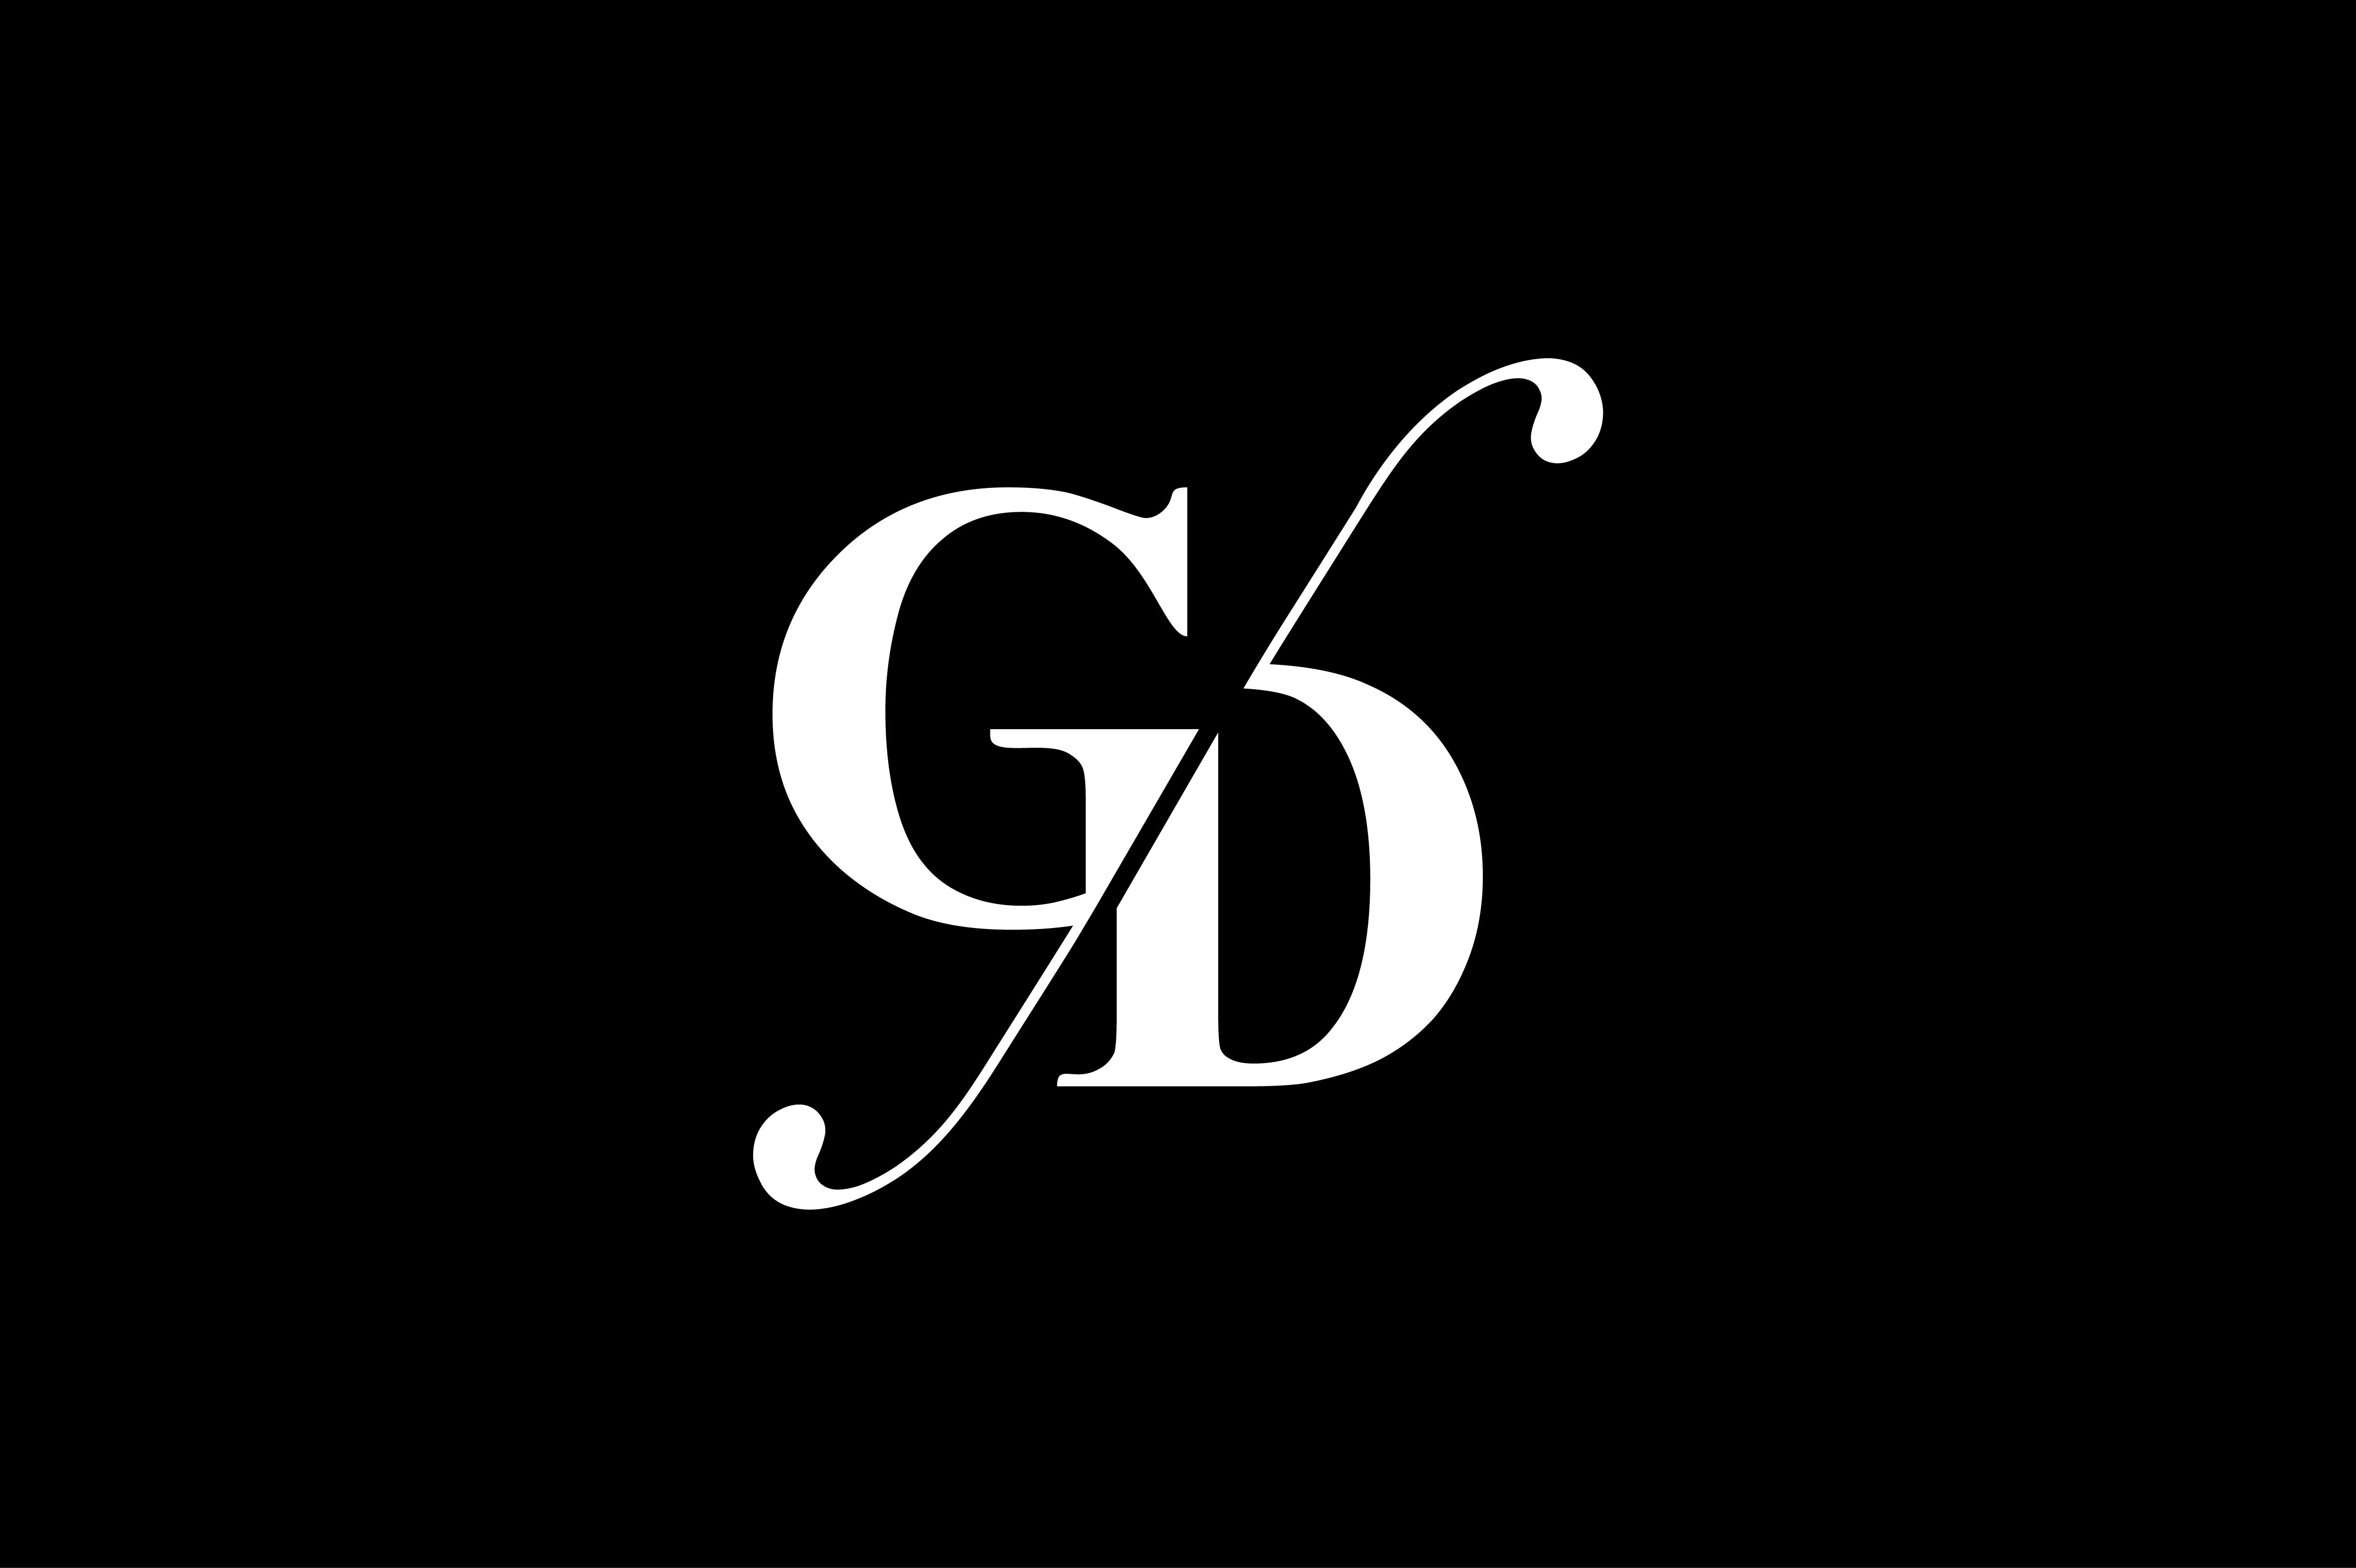 GD Monogram Logo Design By Vectorseller.